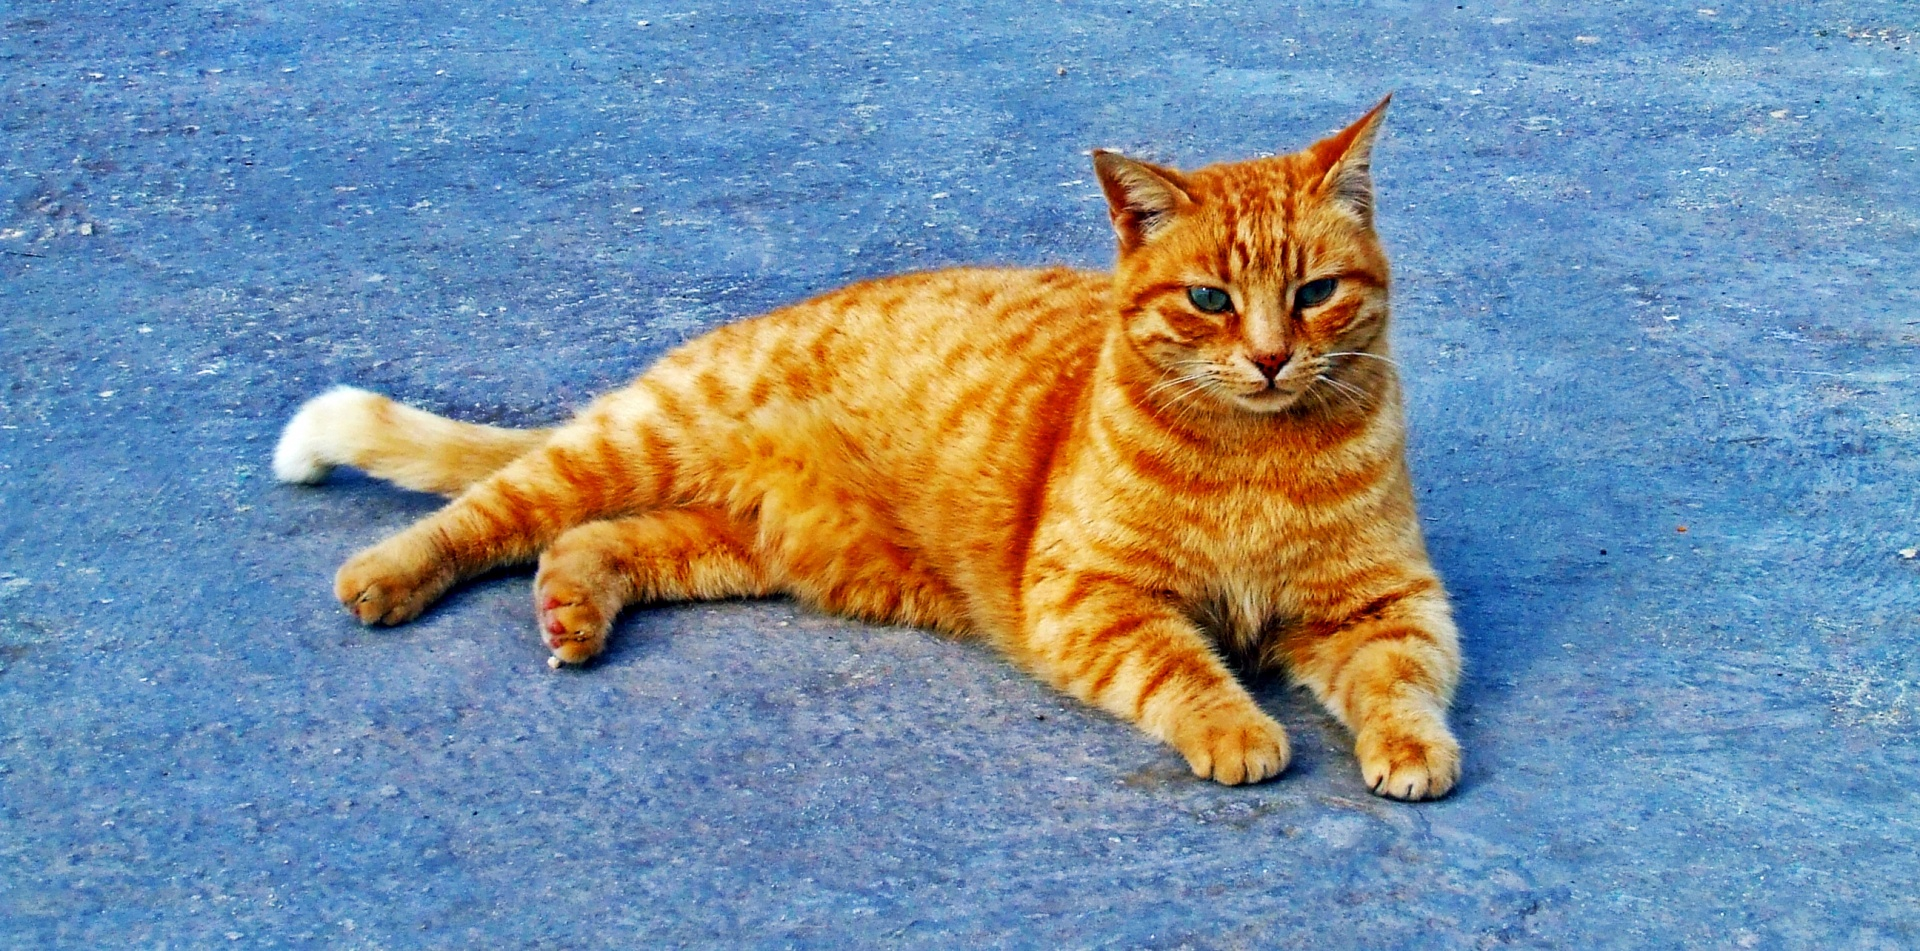 Ginger Cat Free Stock Photo